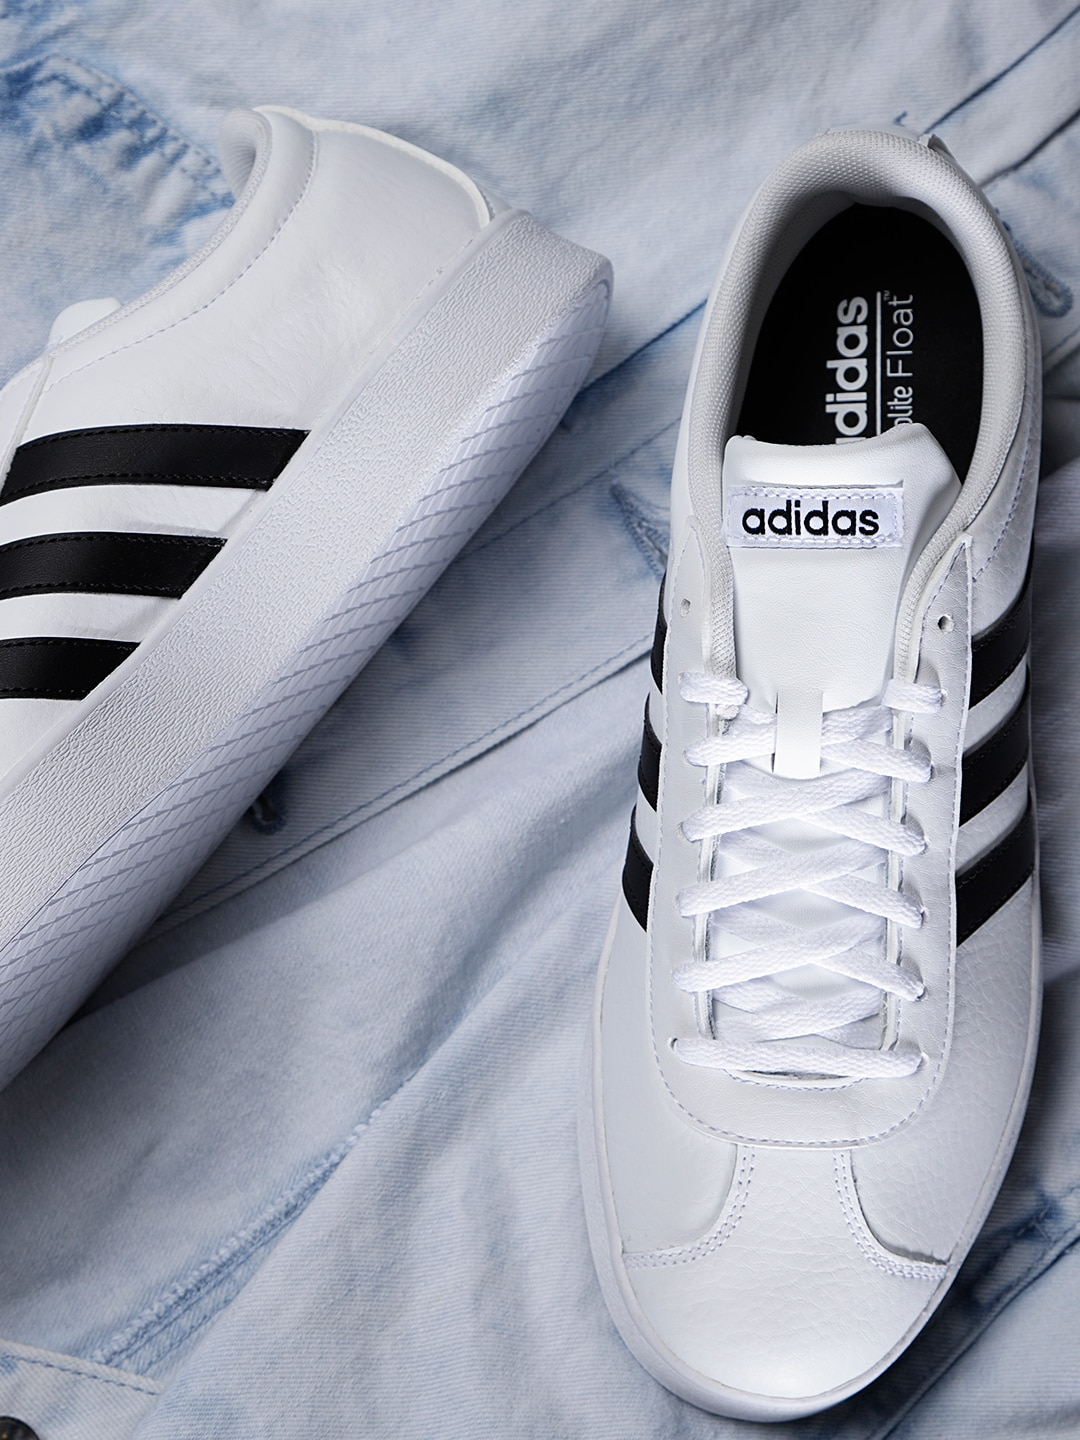 Adidas Leather Shoes - Buy Adidas Leather Shoes Online in India 01385059e